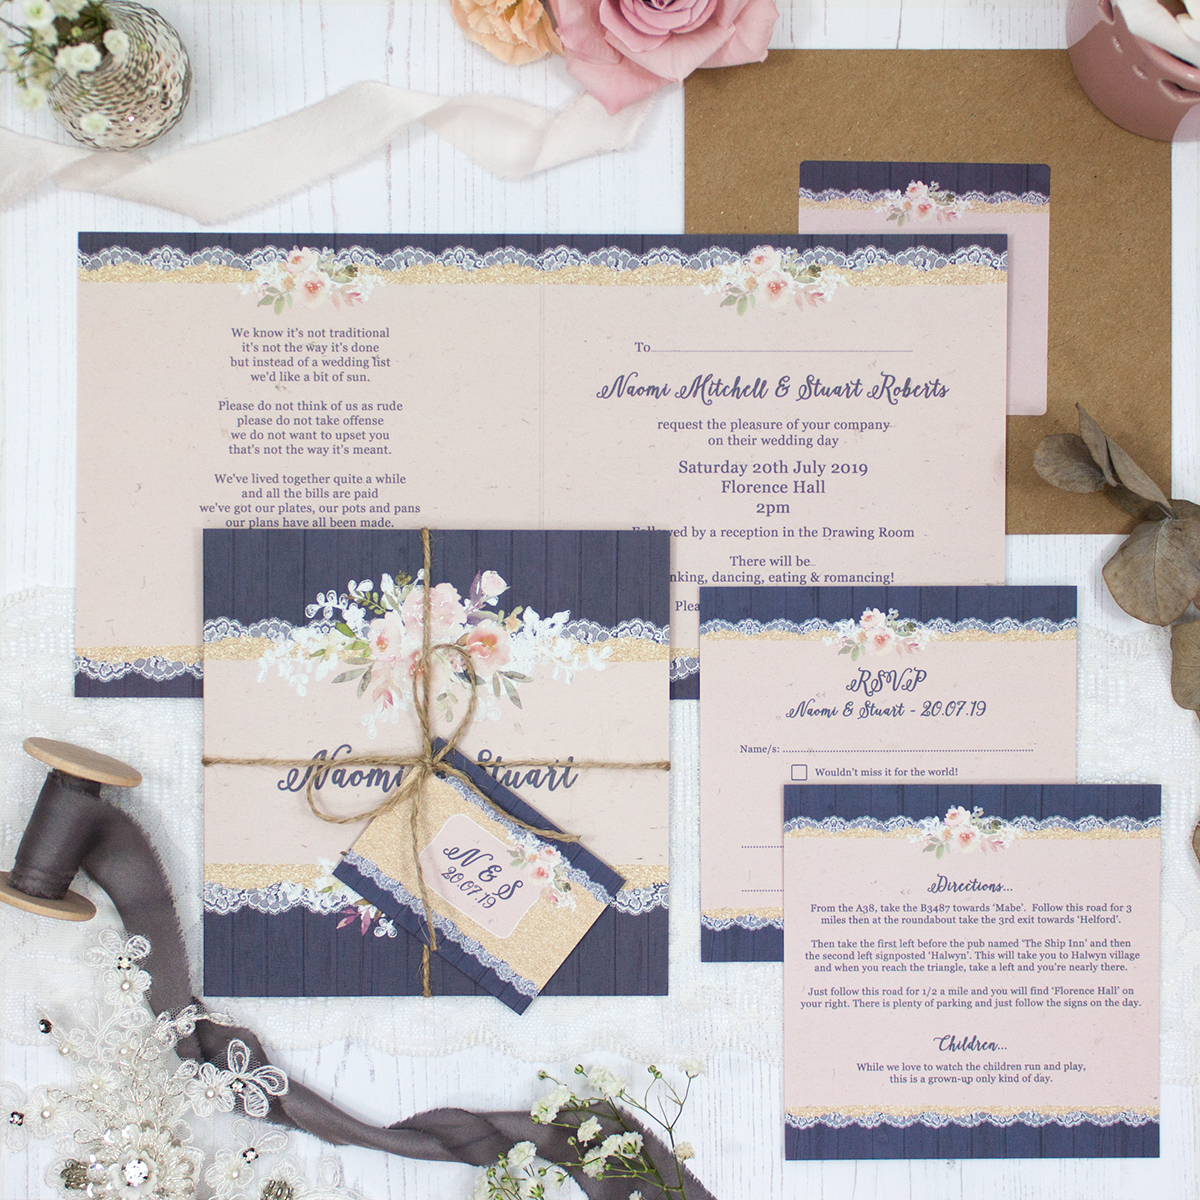 Midnight Glimmer Wedding showing invitation